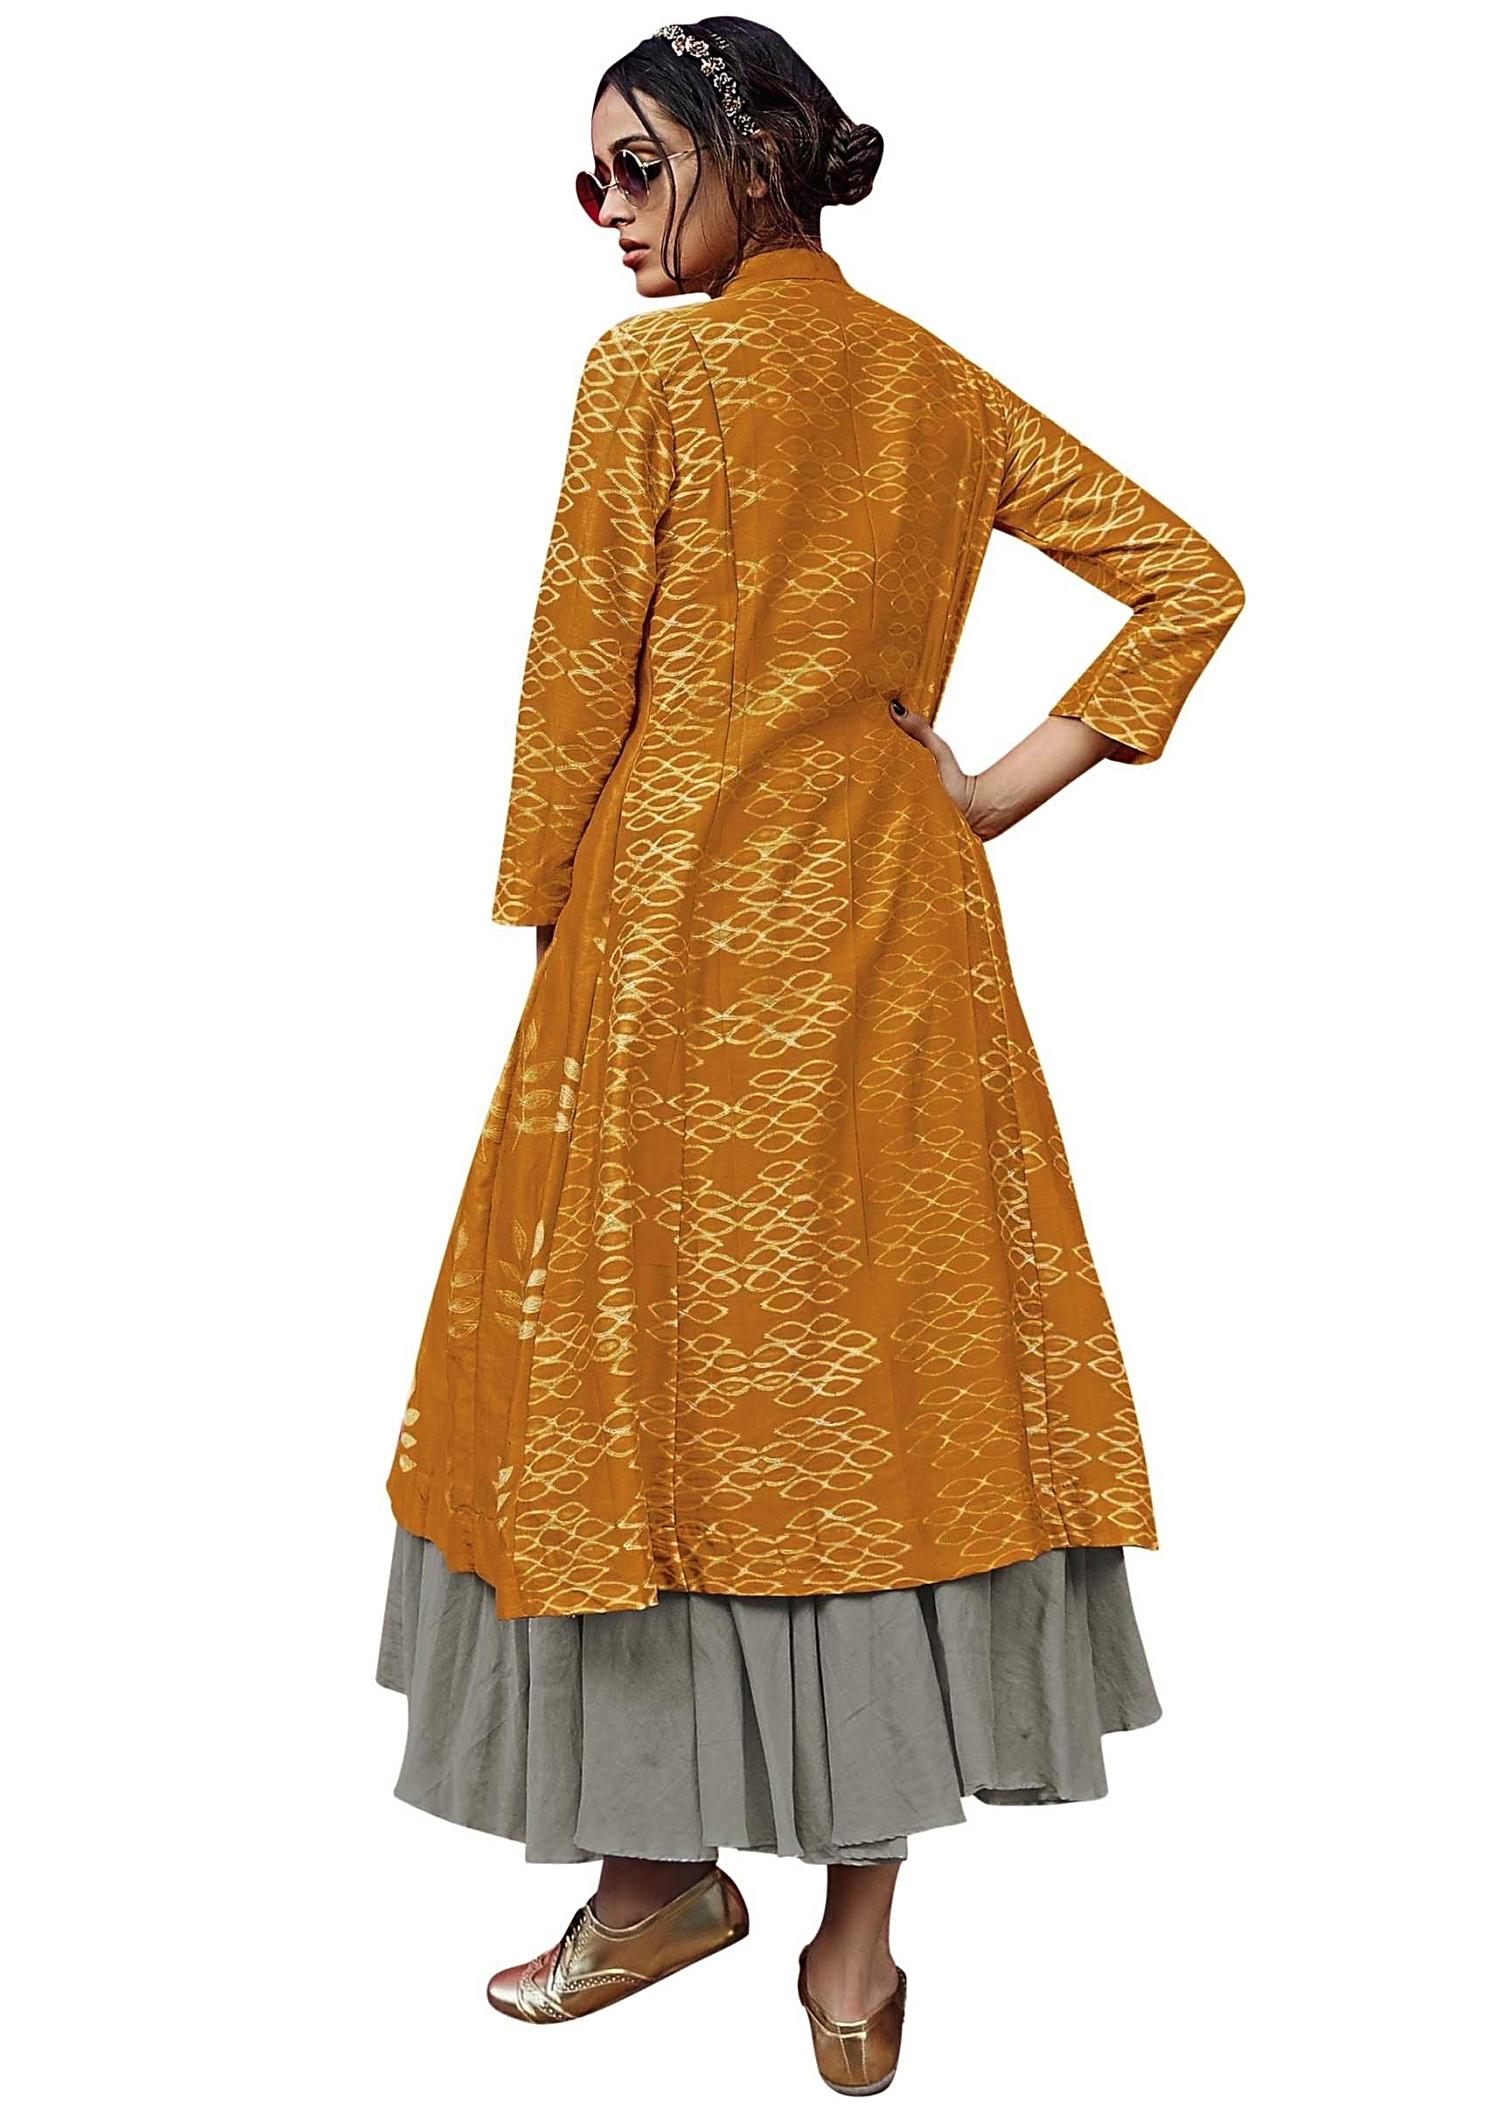 Ocher yellow long top matched with grey skirt - Kalkifashion